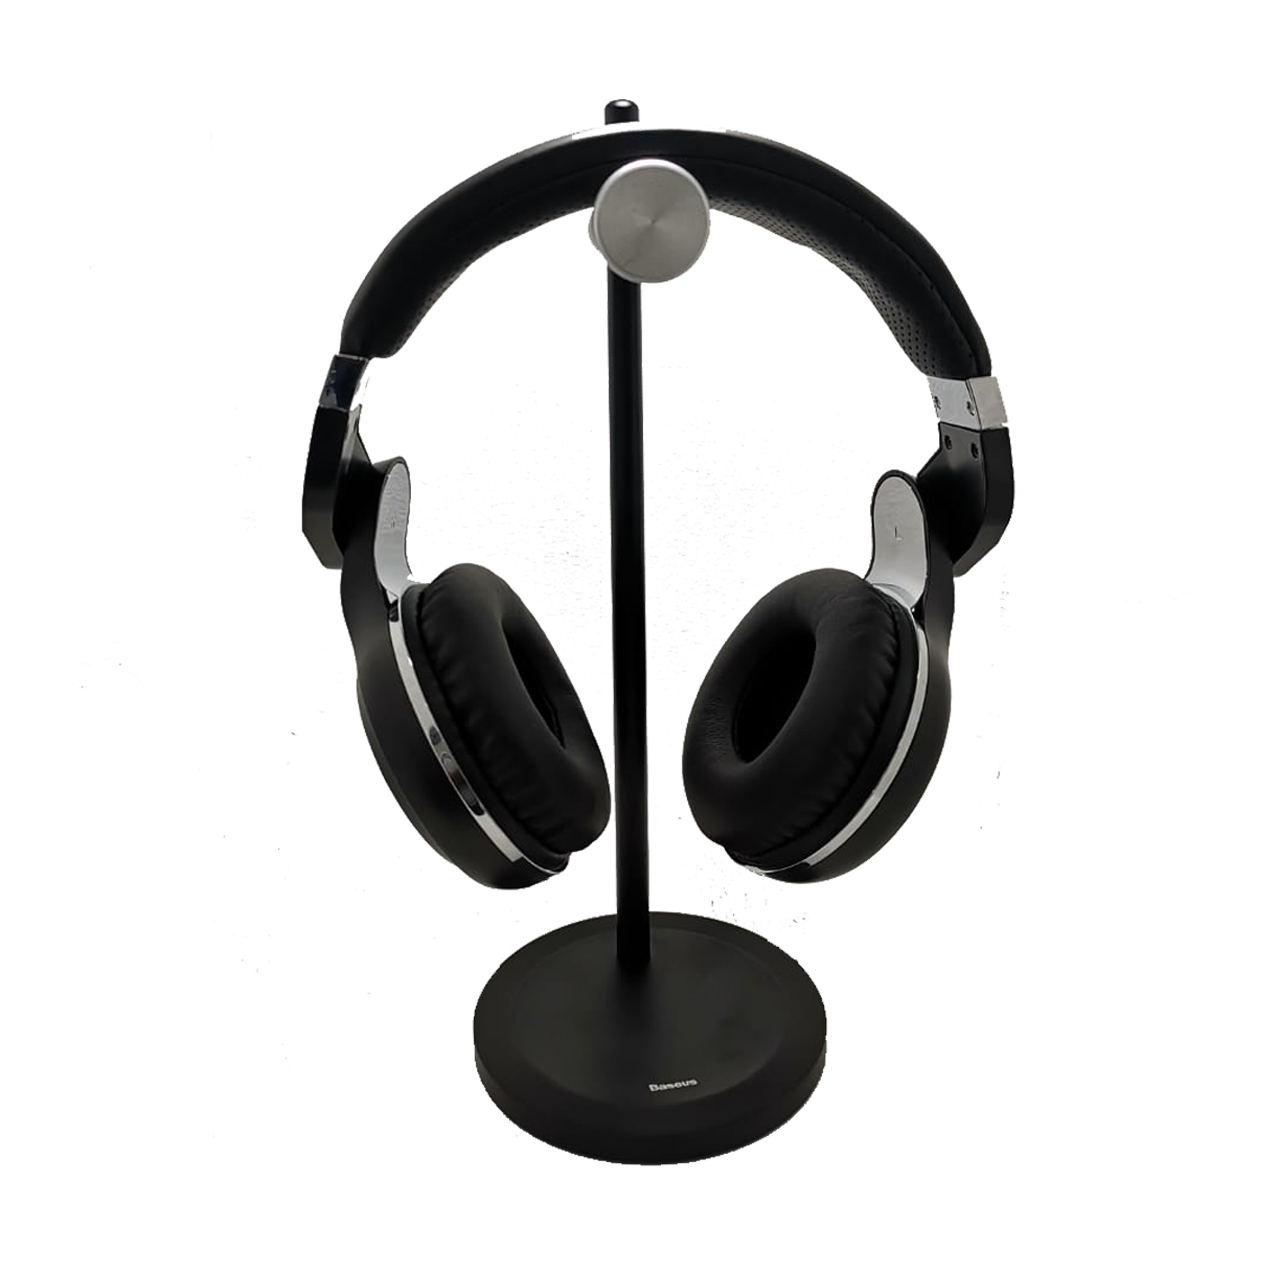 fcdb4b20845 Bluedio T2+ Turbine Headphone For Sale In Jamaica - Cell Jamaica ...